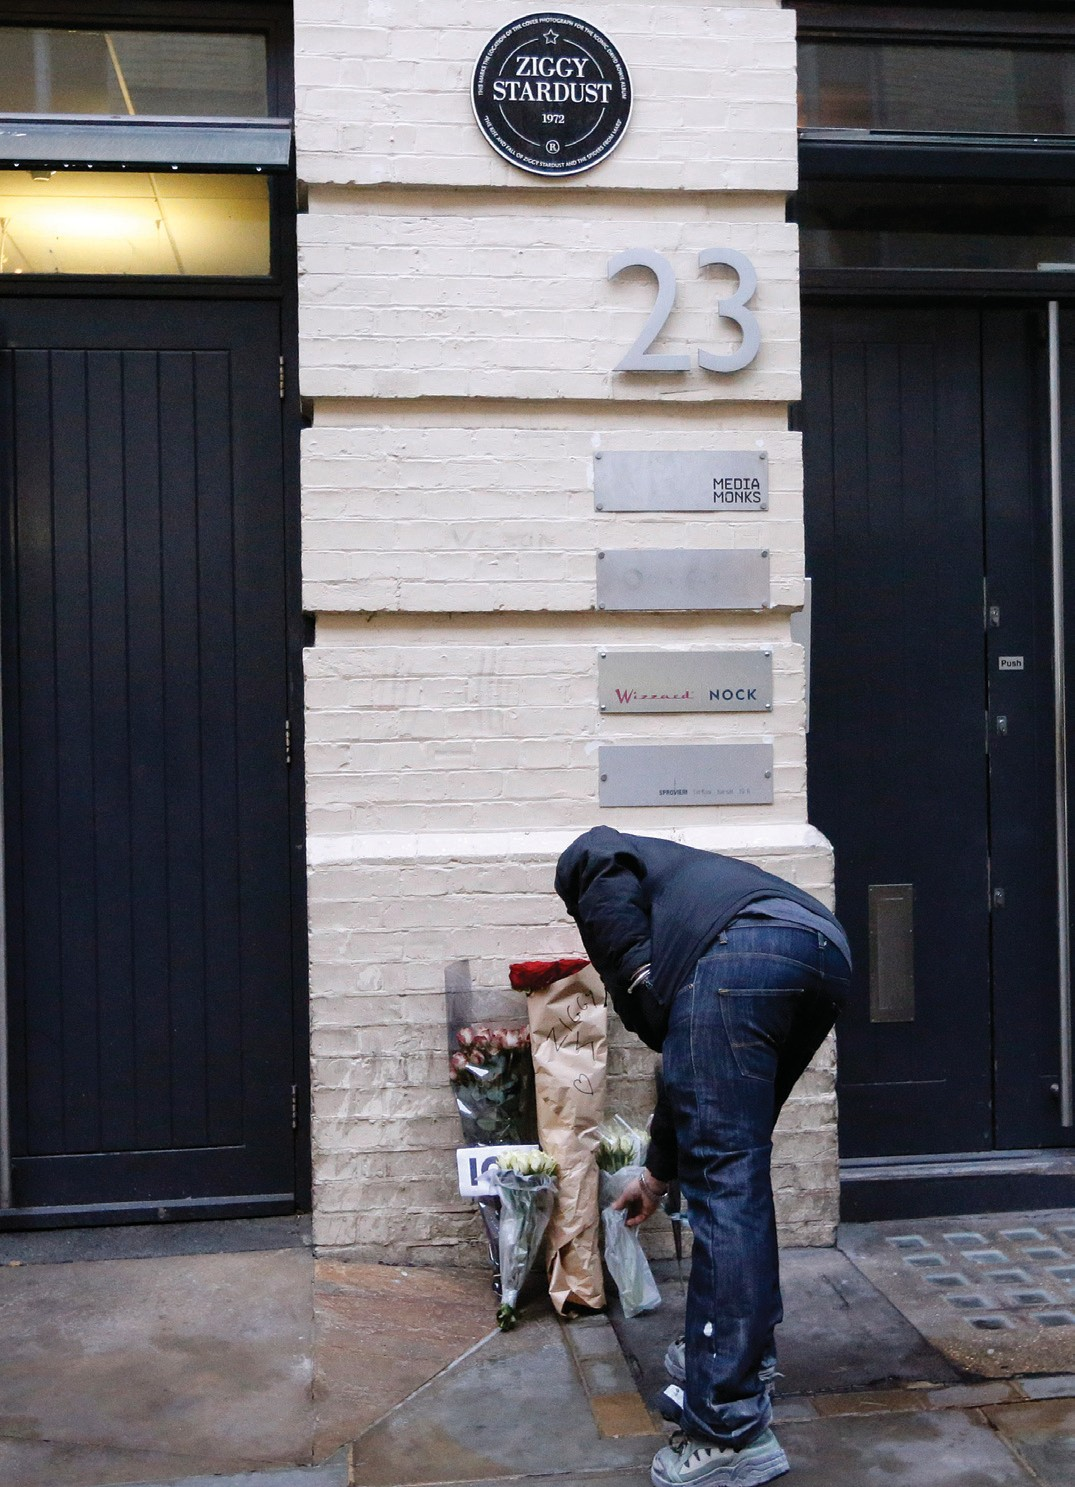 A man places flowers where the Ziggy Stardust album cover of David Bowie was photographed in London, today. Bowie died of cancer Sunday.